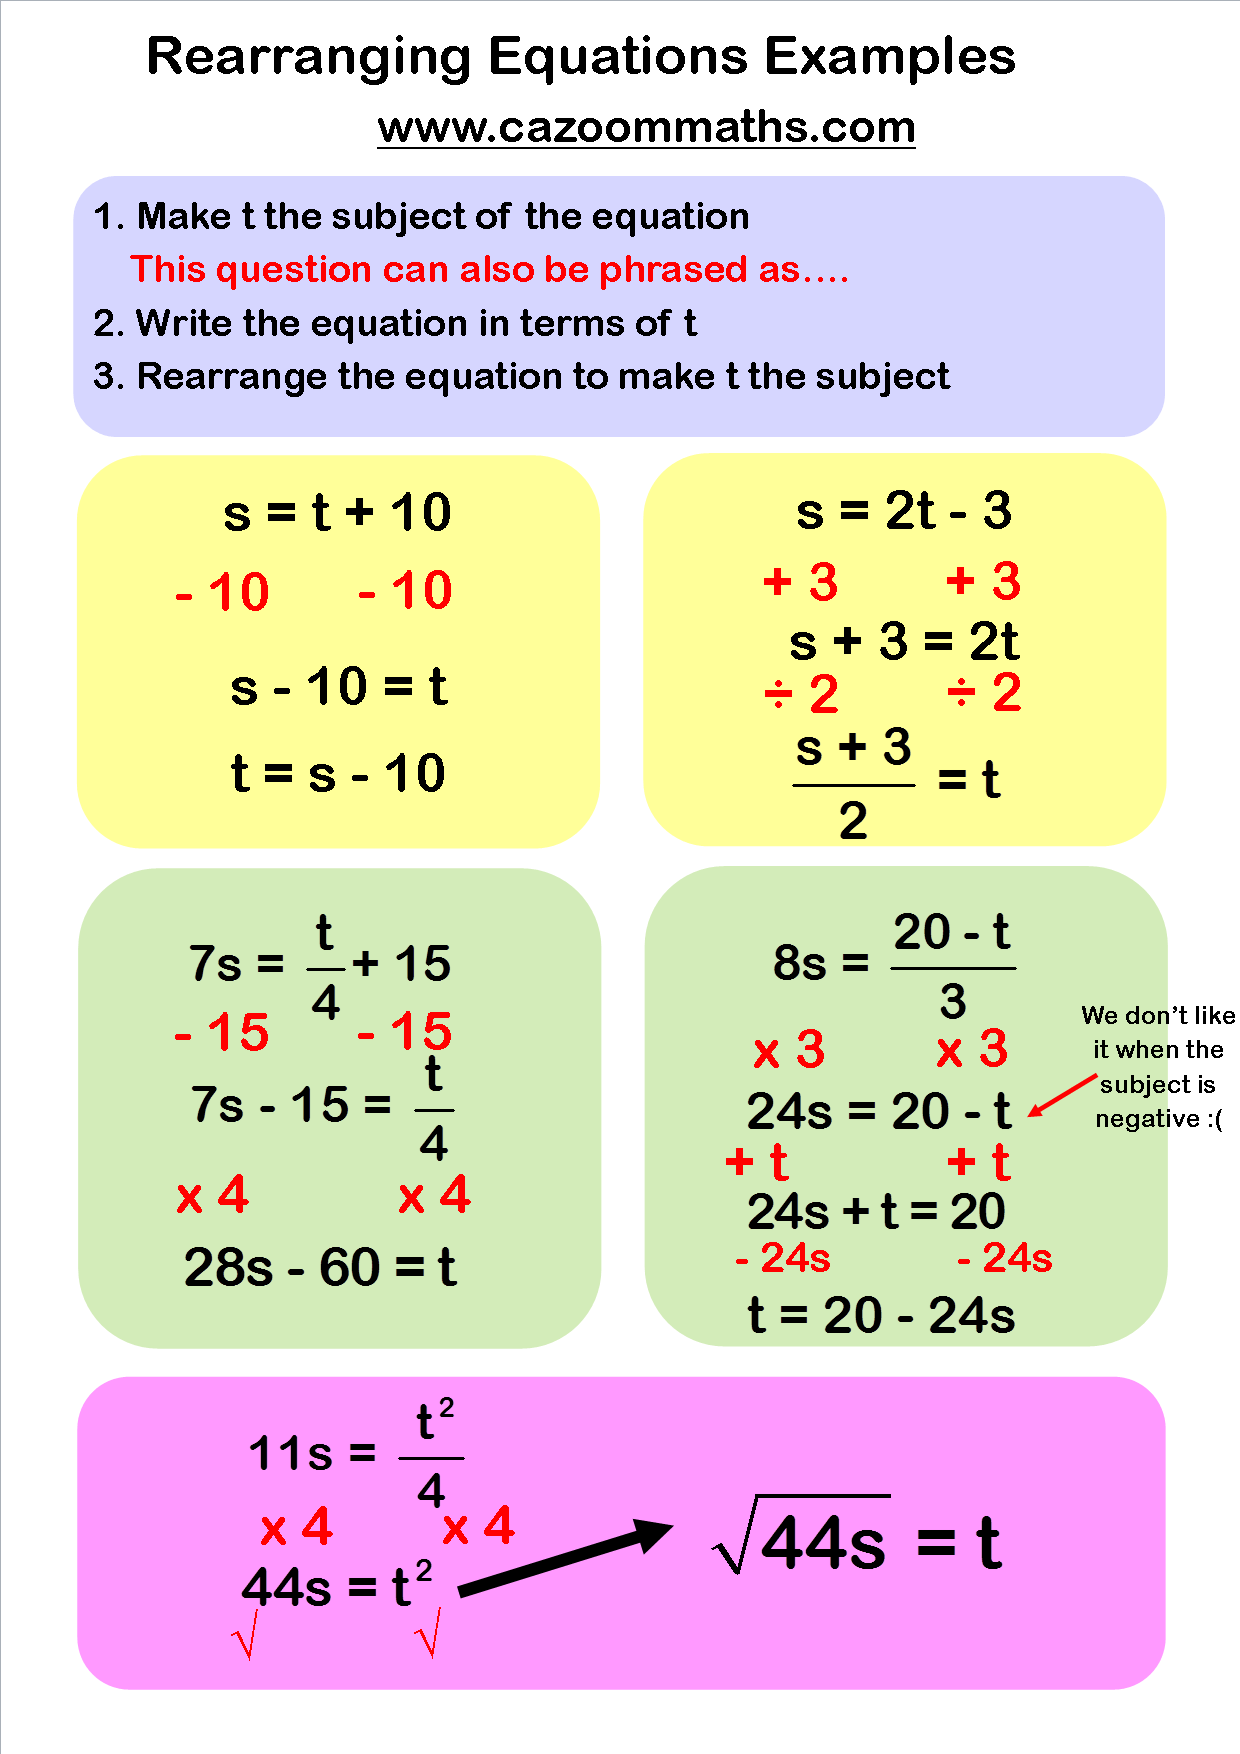 Worksheets Equation Building Worksheets fun algebra worksheets ks3 and ks4 maths resources rearranging equations examples